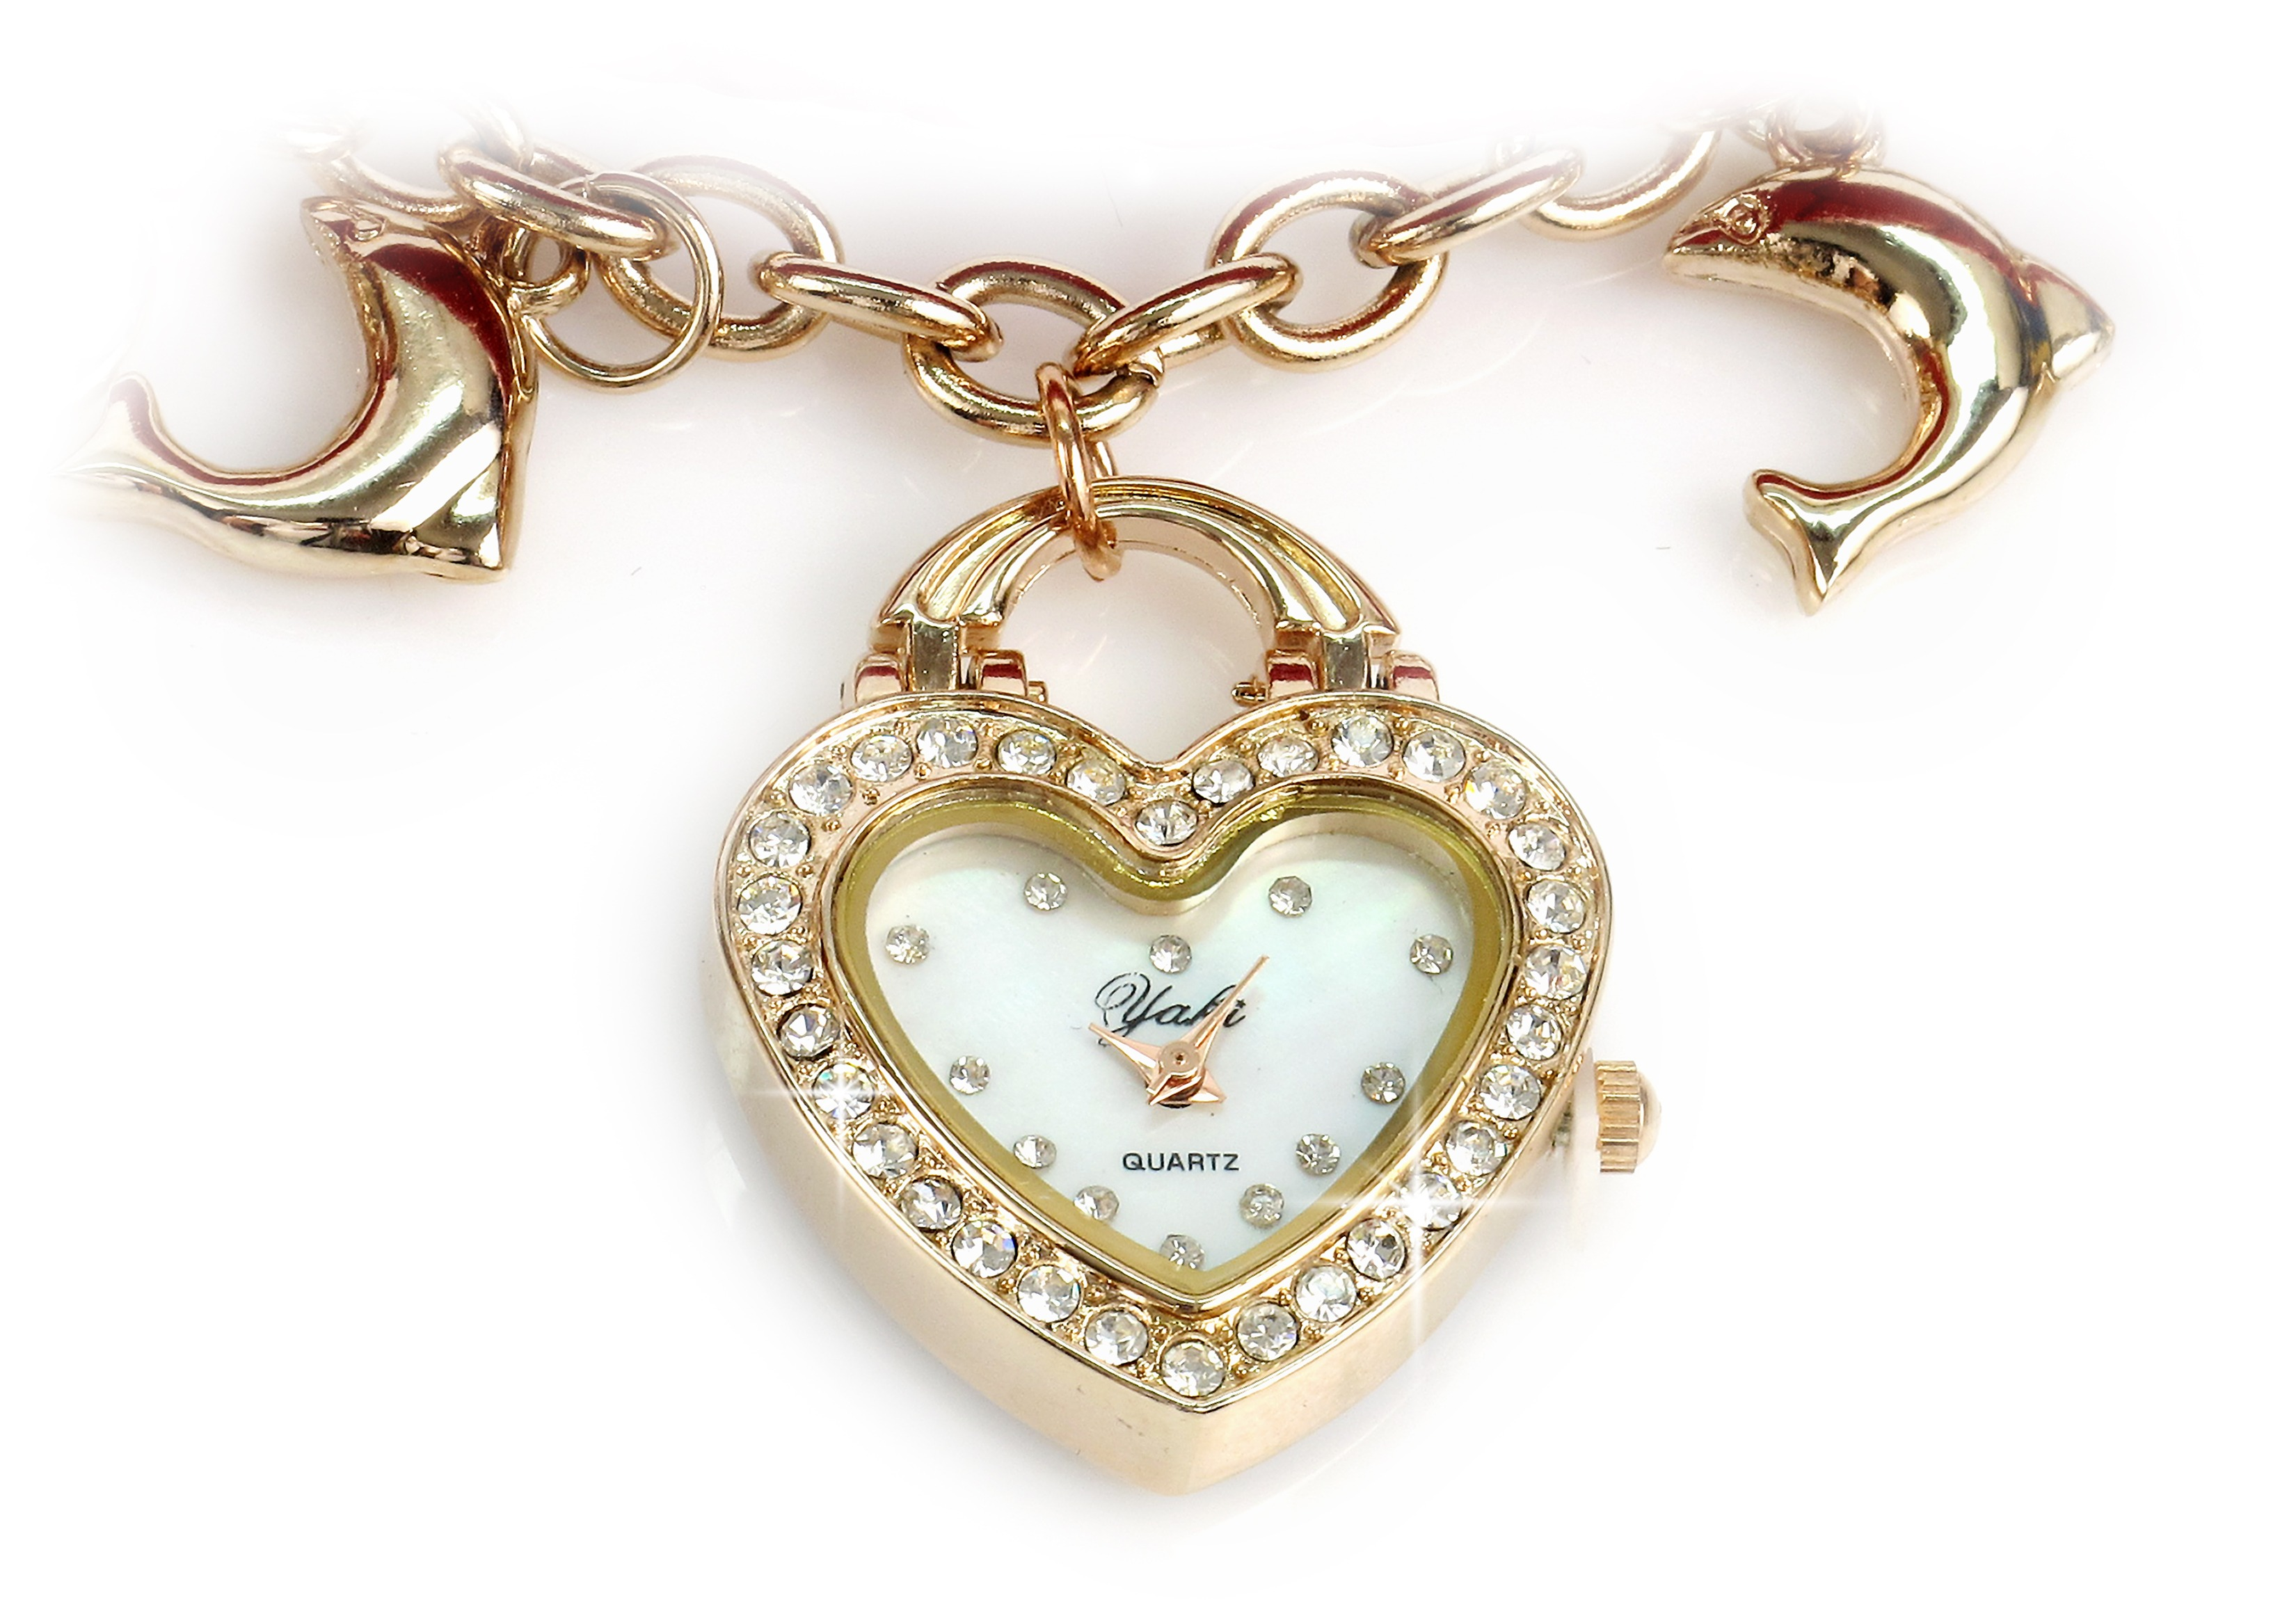 watch-chain-heart-ear-jewelry-necklace-1124415-pxhere.com